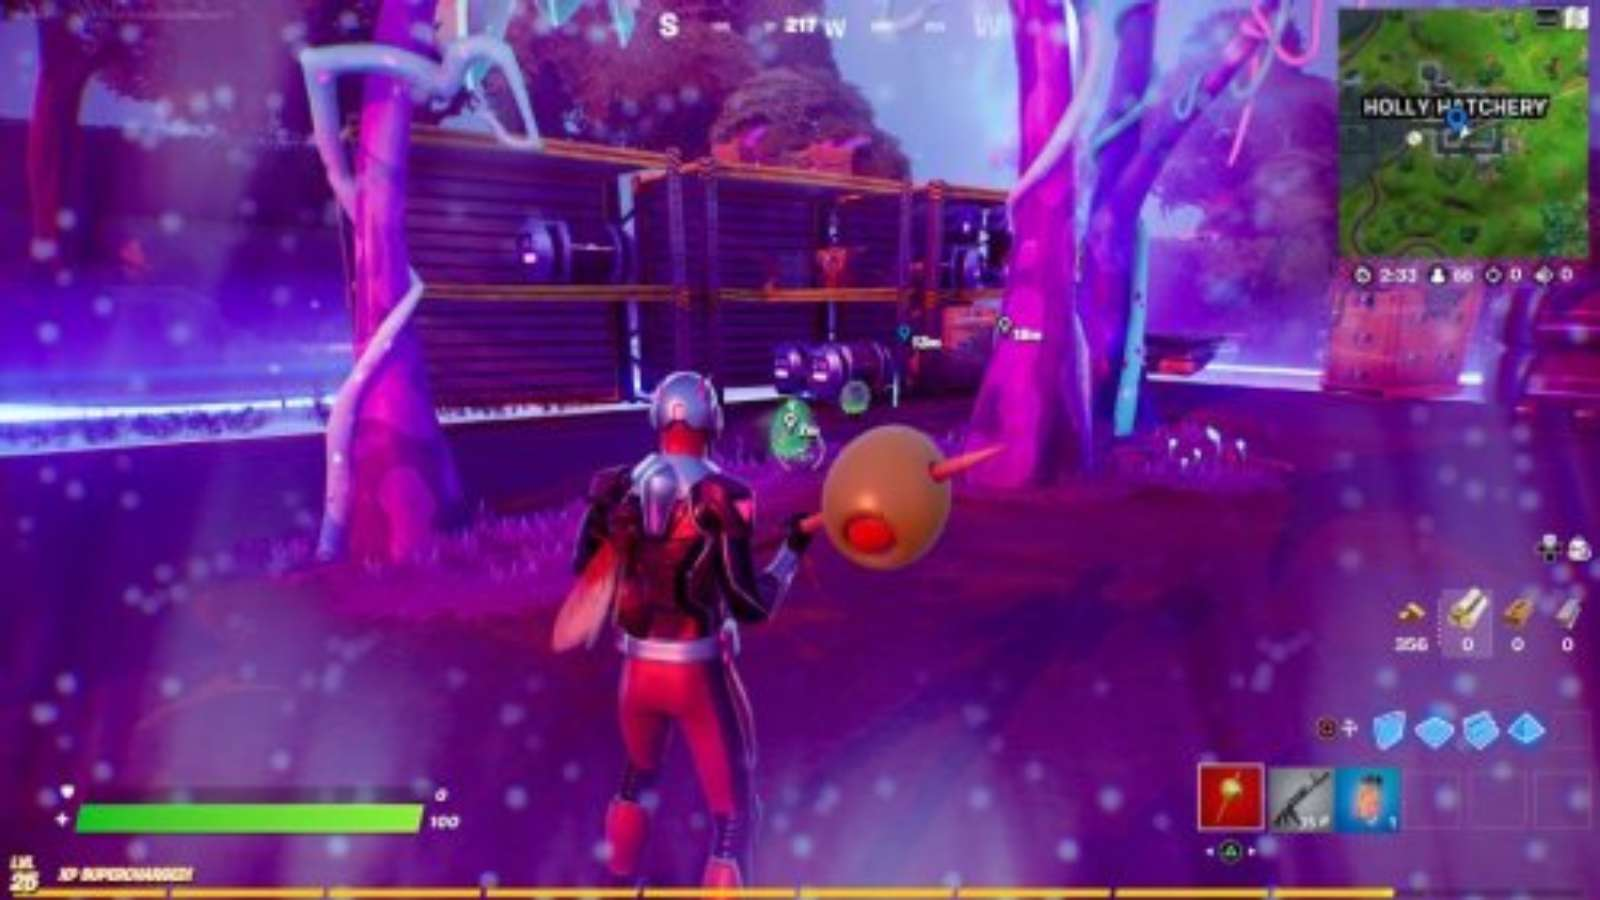 How to Mark an Alien Egg Fortnite: Locations in Holly Hatchery for Quest